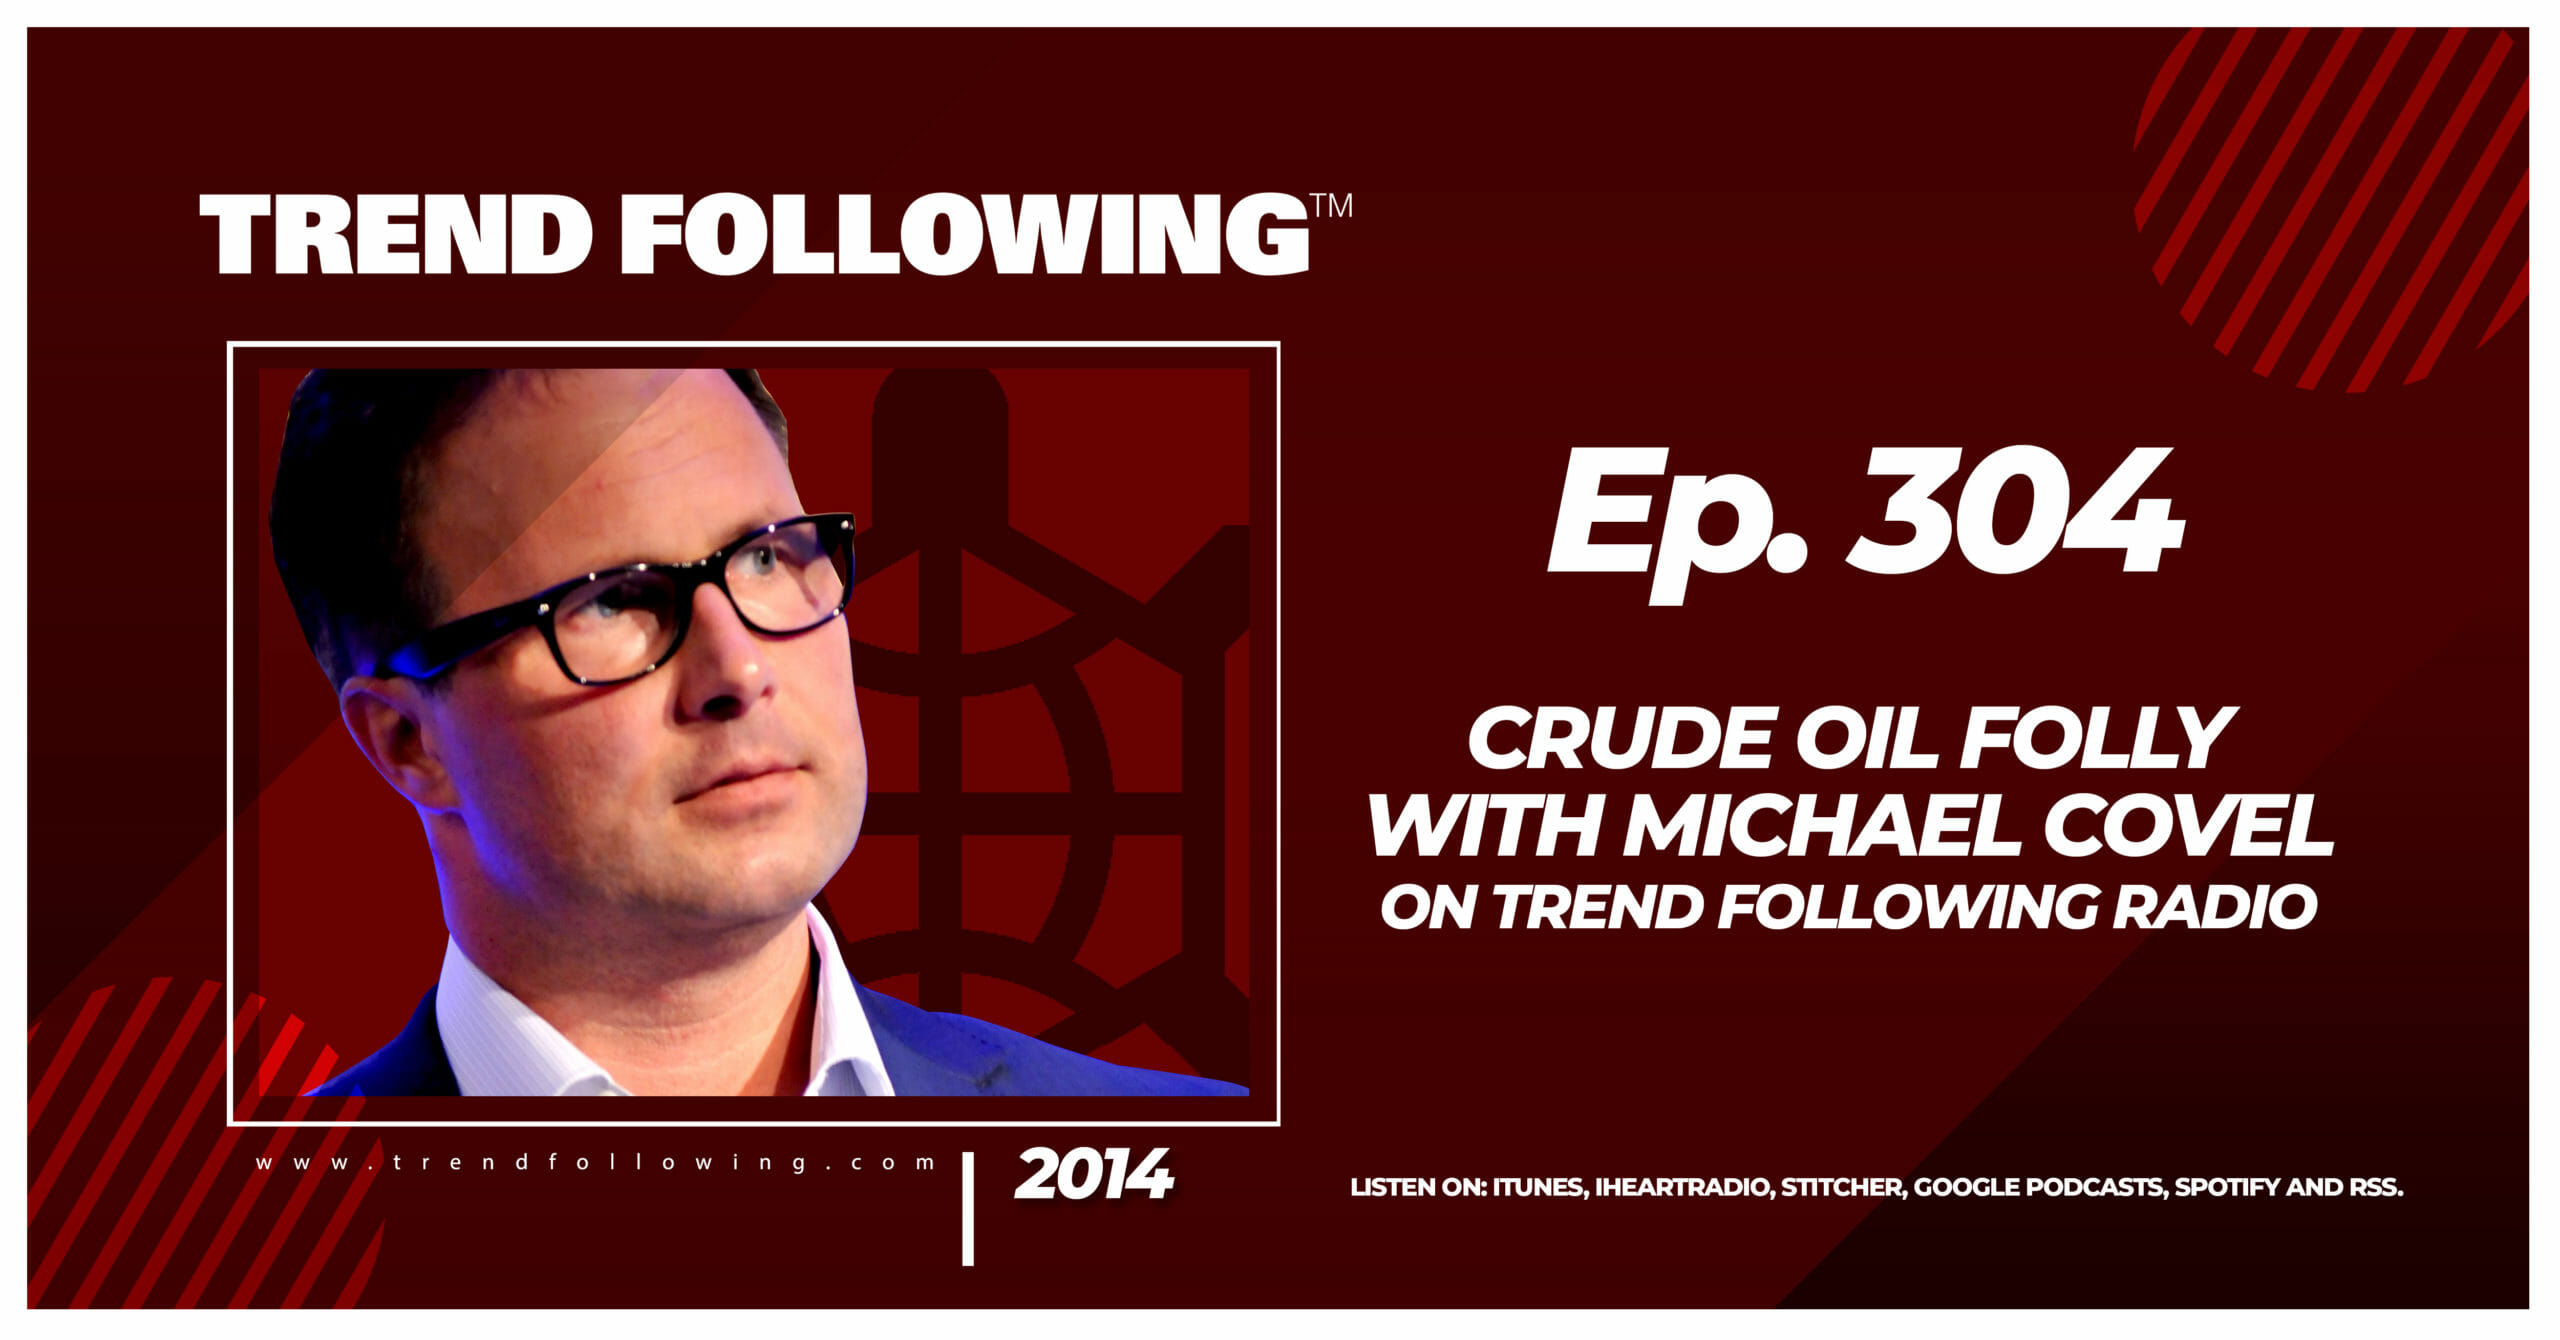 Crude Oil Folly with Michael Covel on Trend Following Radio